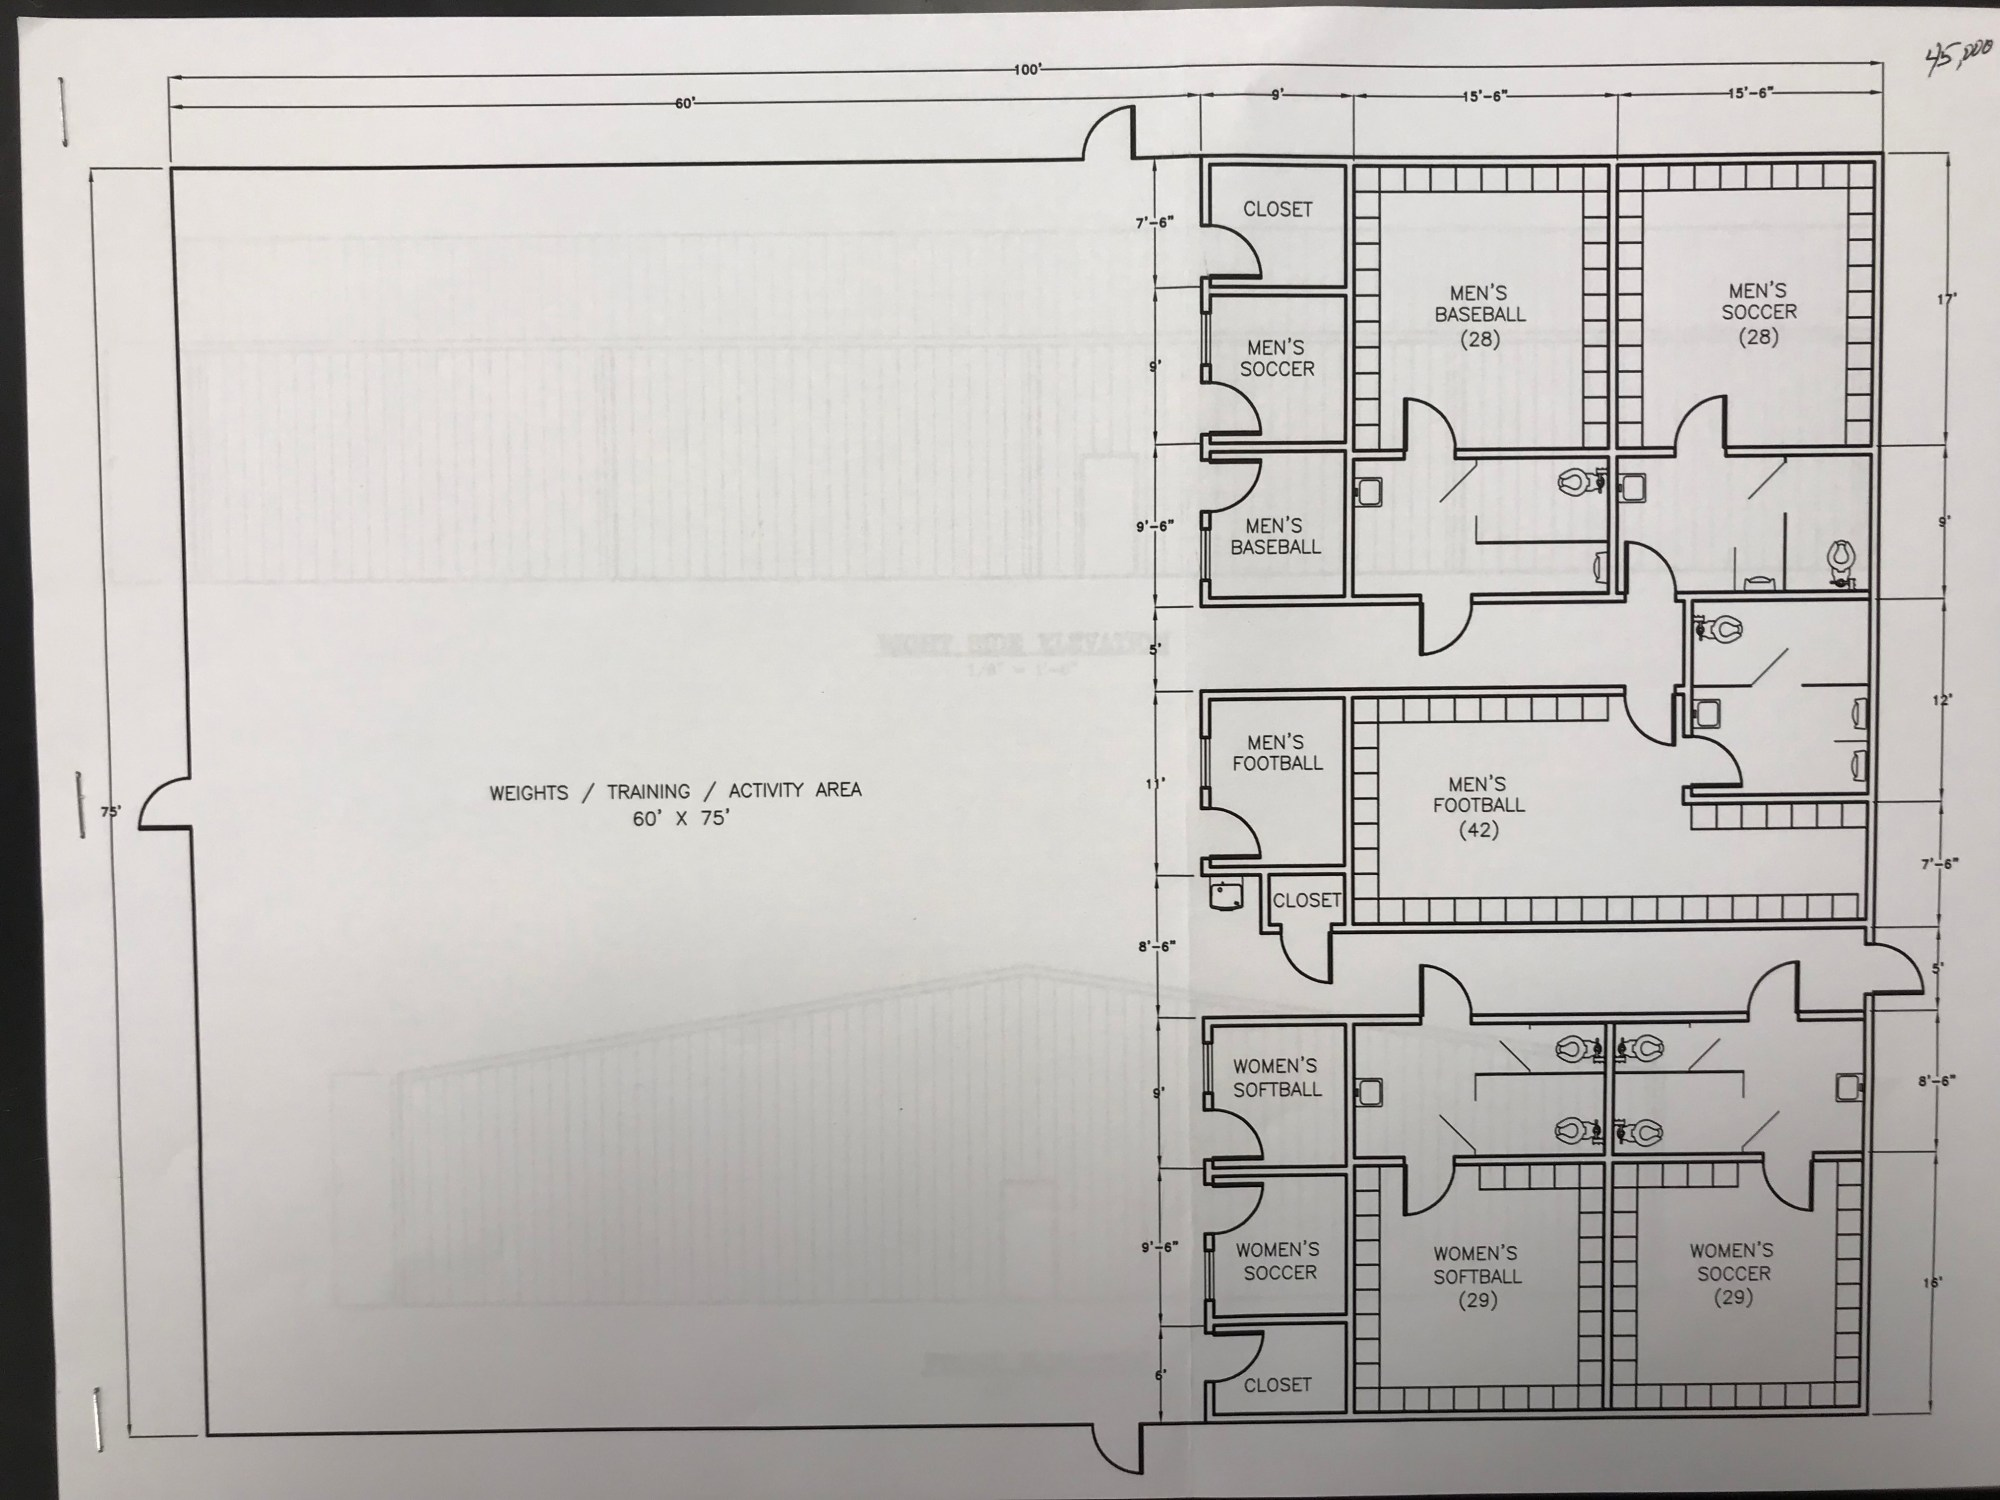 hight resolution of indoor practice facility approved for coffee co middle school